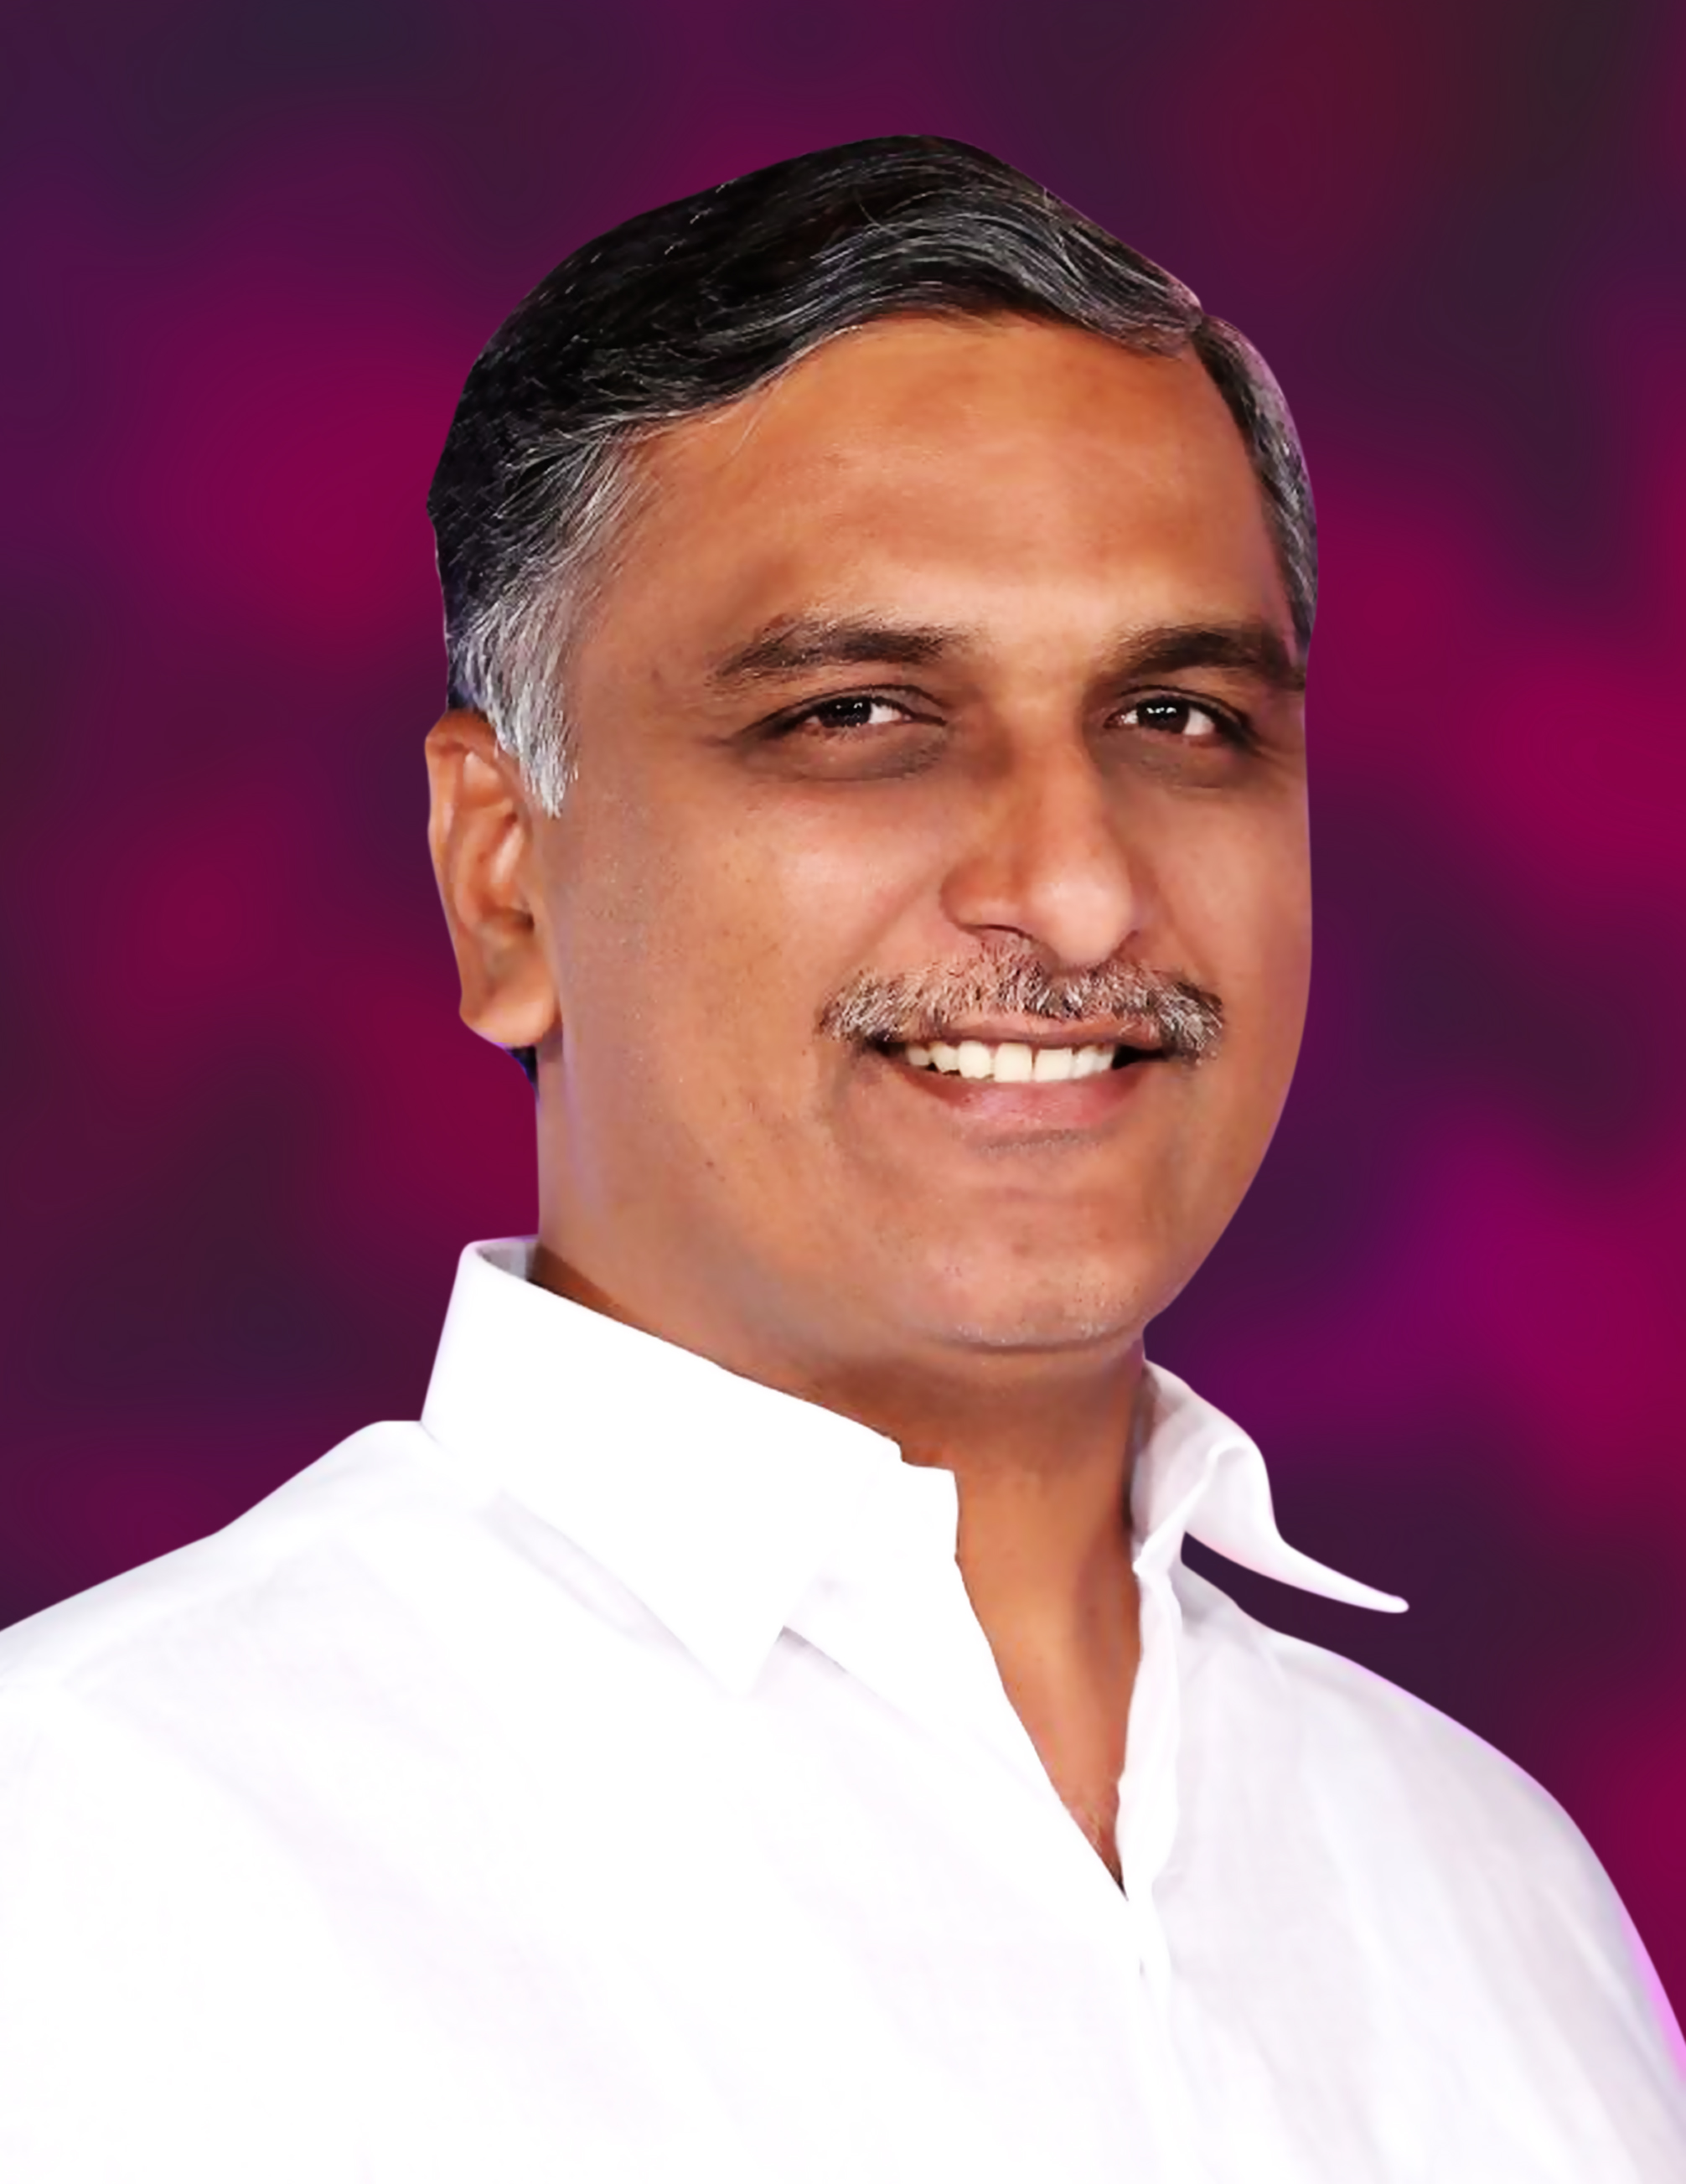 File:Thanneeru harish rao minister jpg - Wikimedia Commons